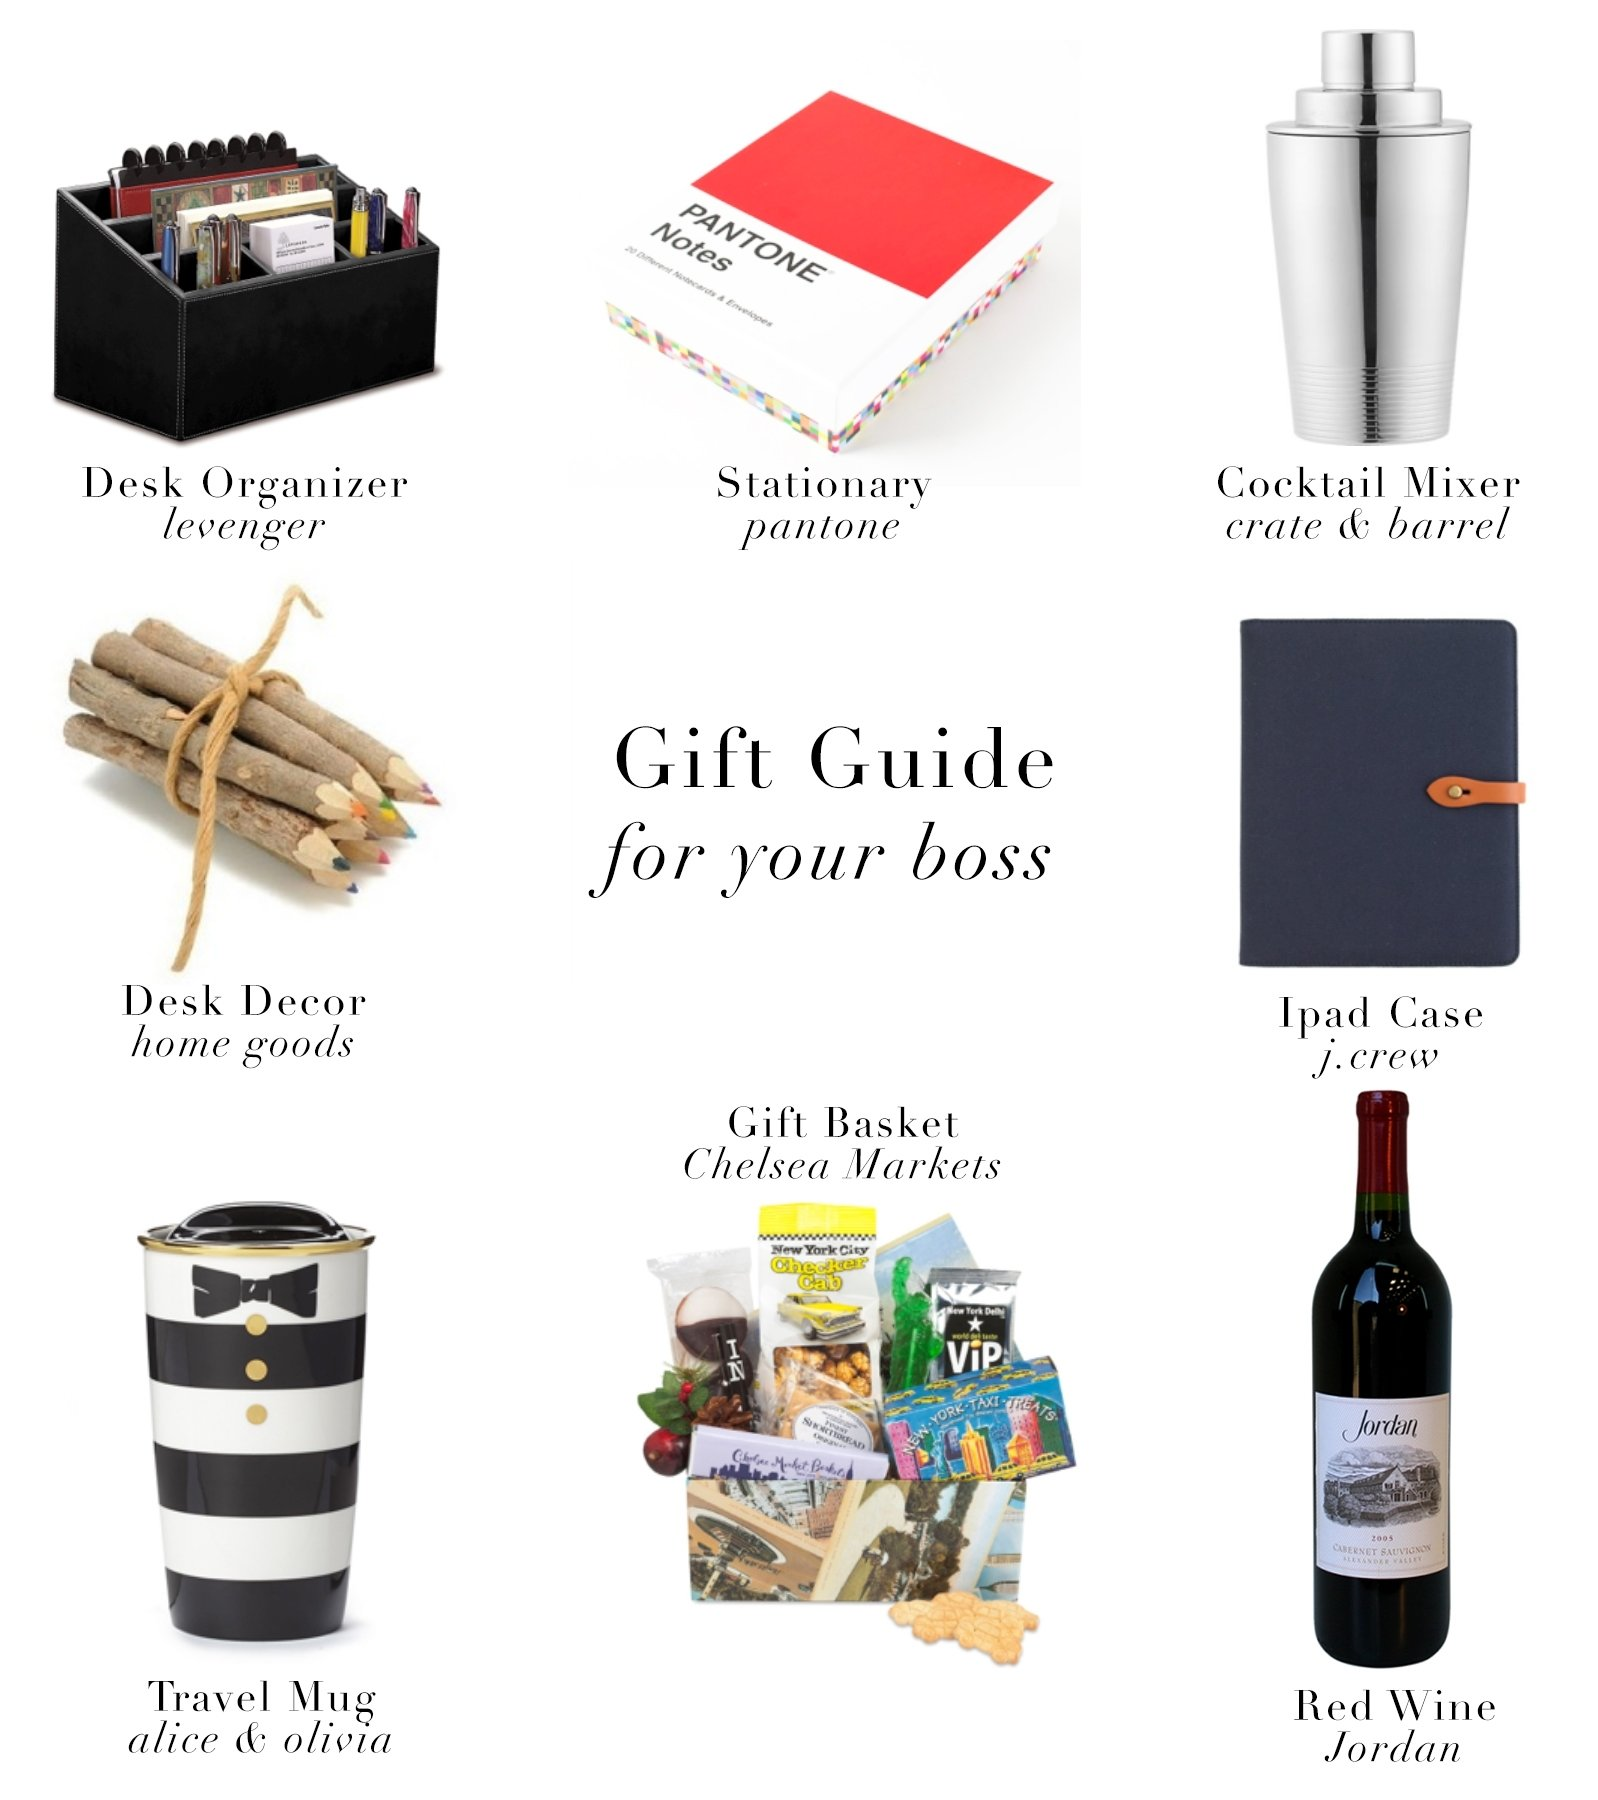 10 Perfect Christmas Gift Ideas For Your Boss